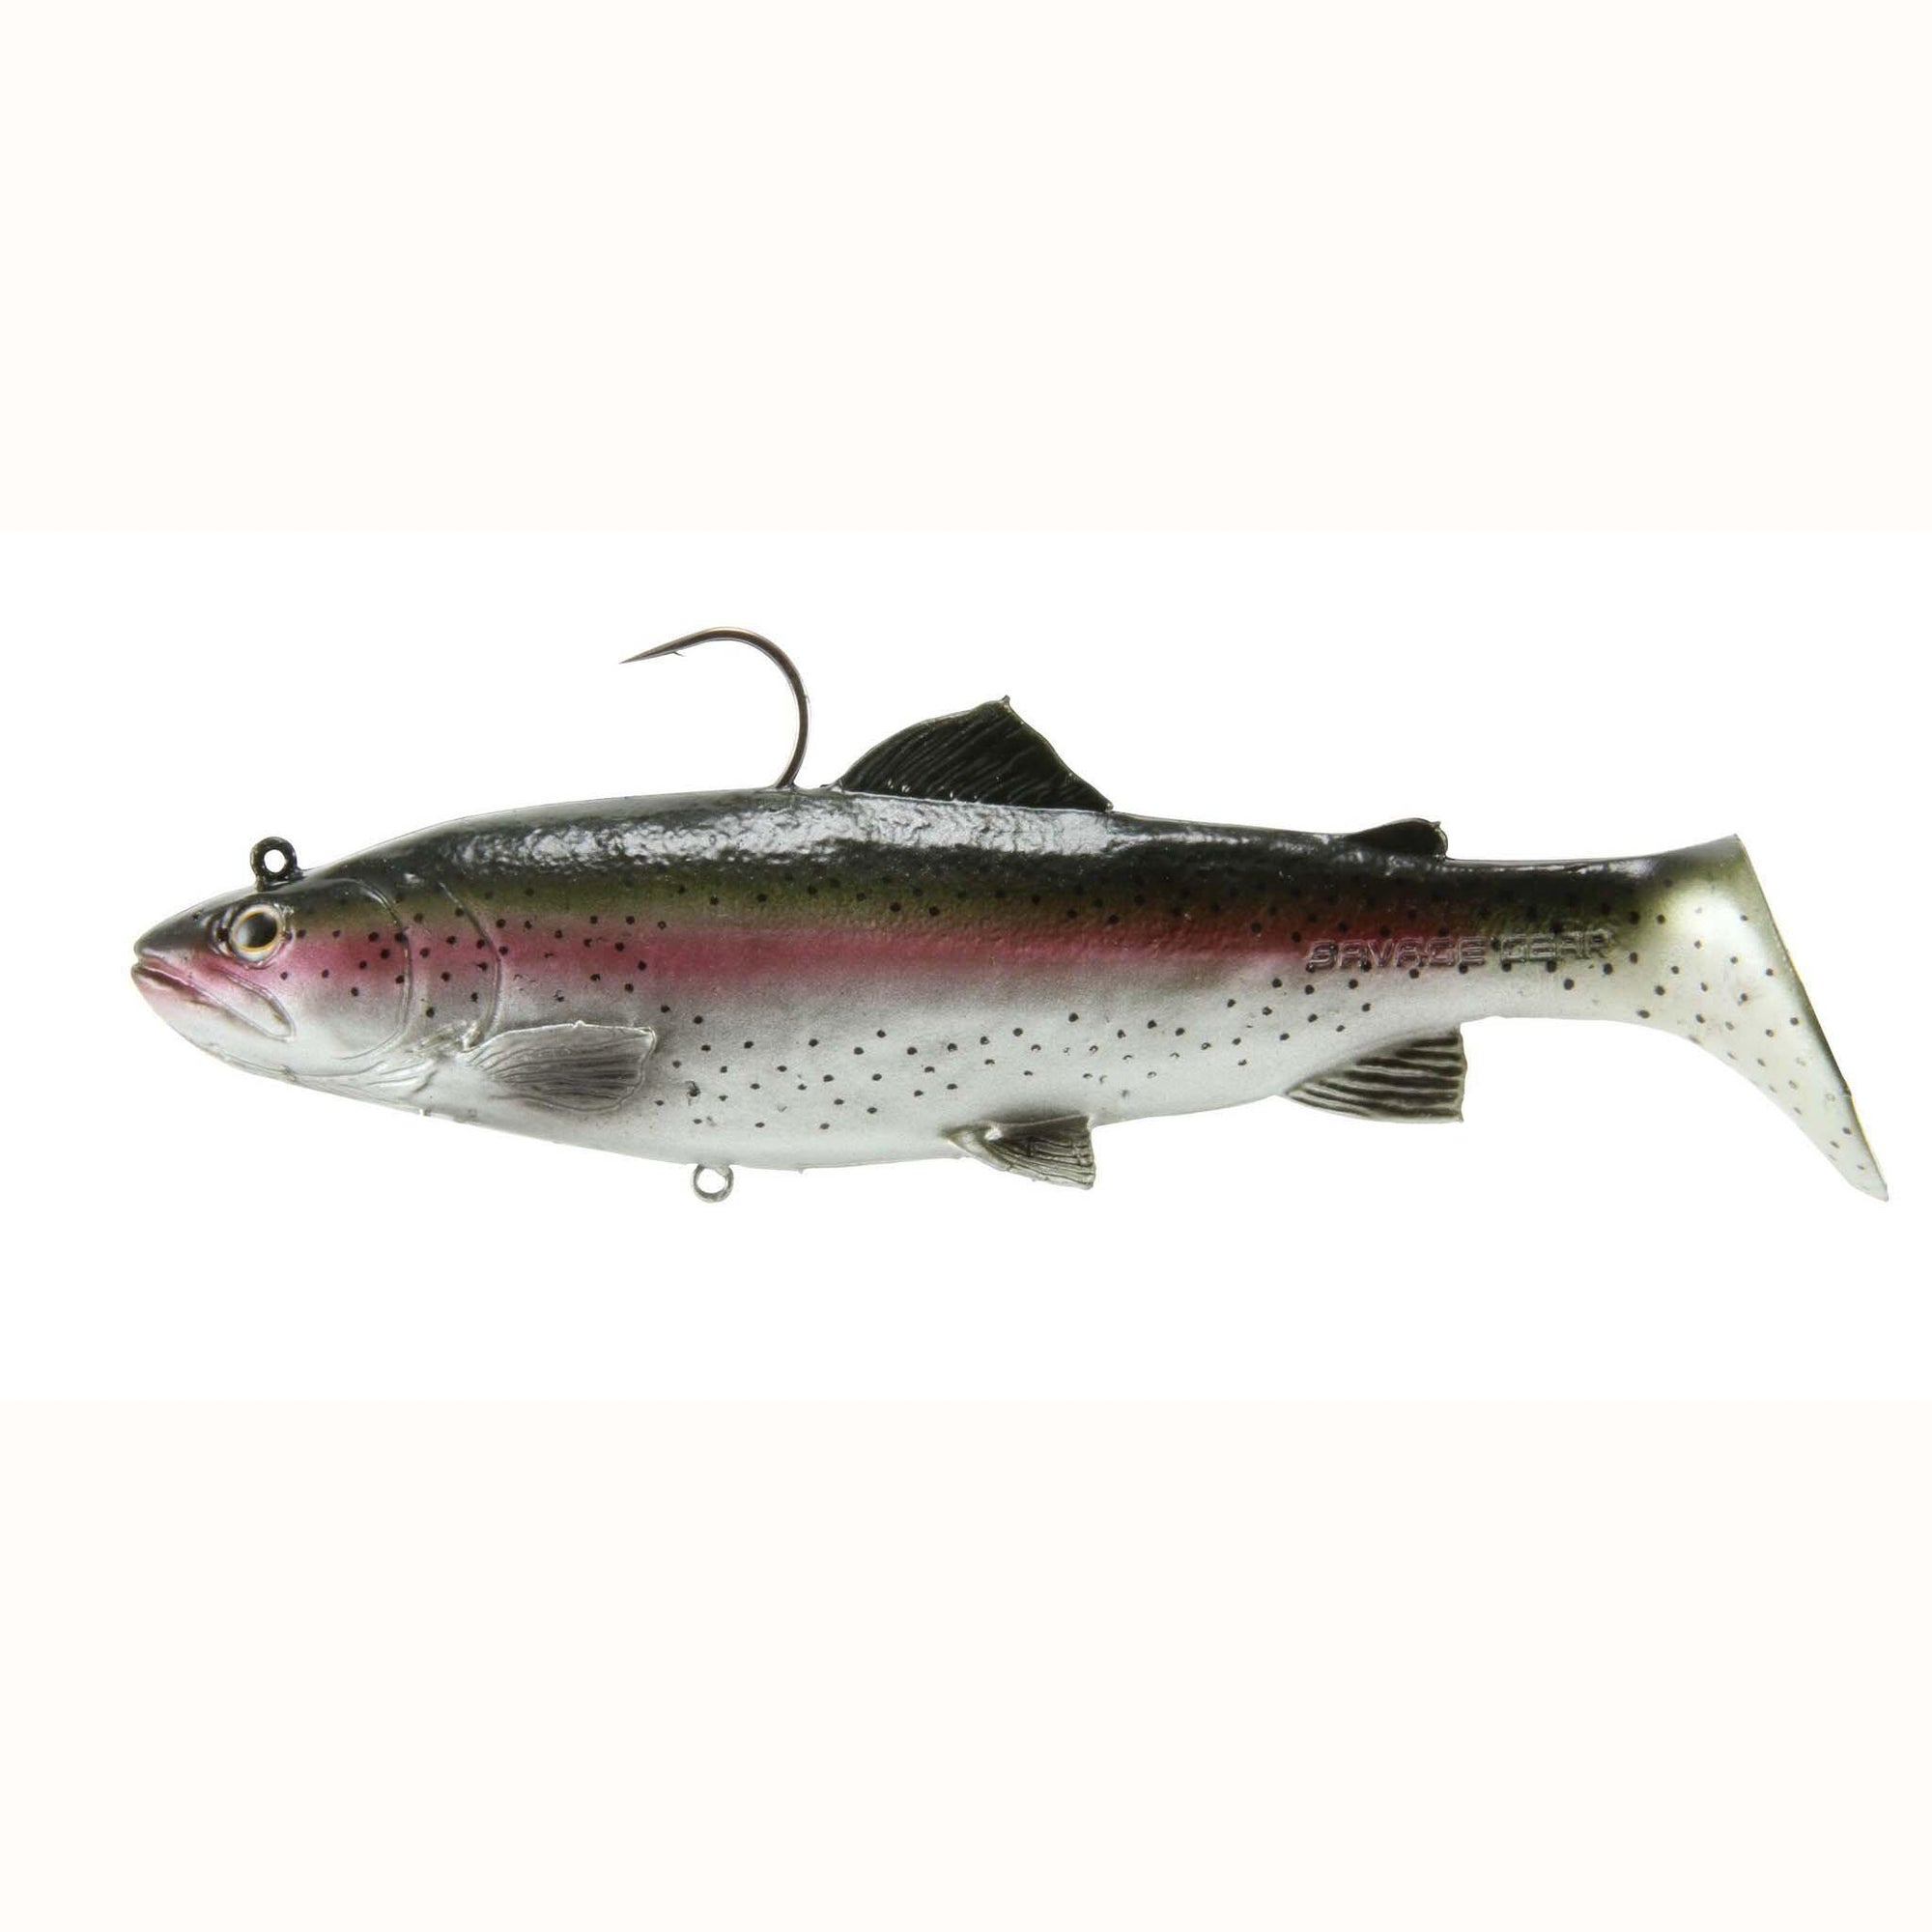 "Savage Gear 3D Real Trout 8"" 3.5oz Slow Sinking Dark Trout-Swimbaits-Savage Gear Baits-Bass Fishing Hub"